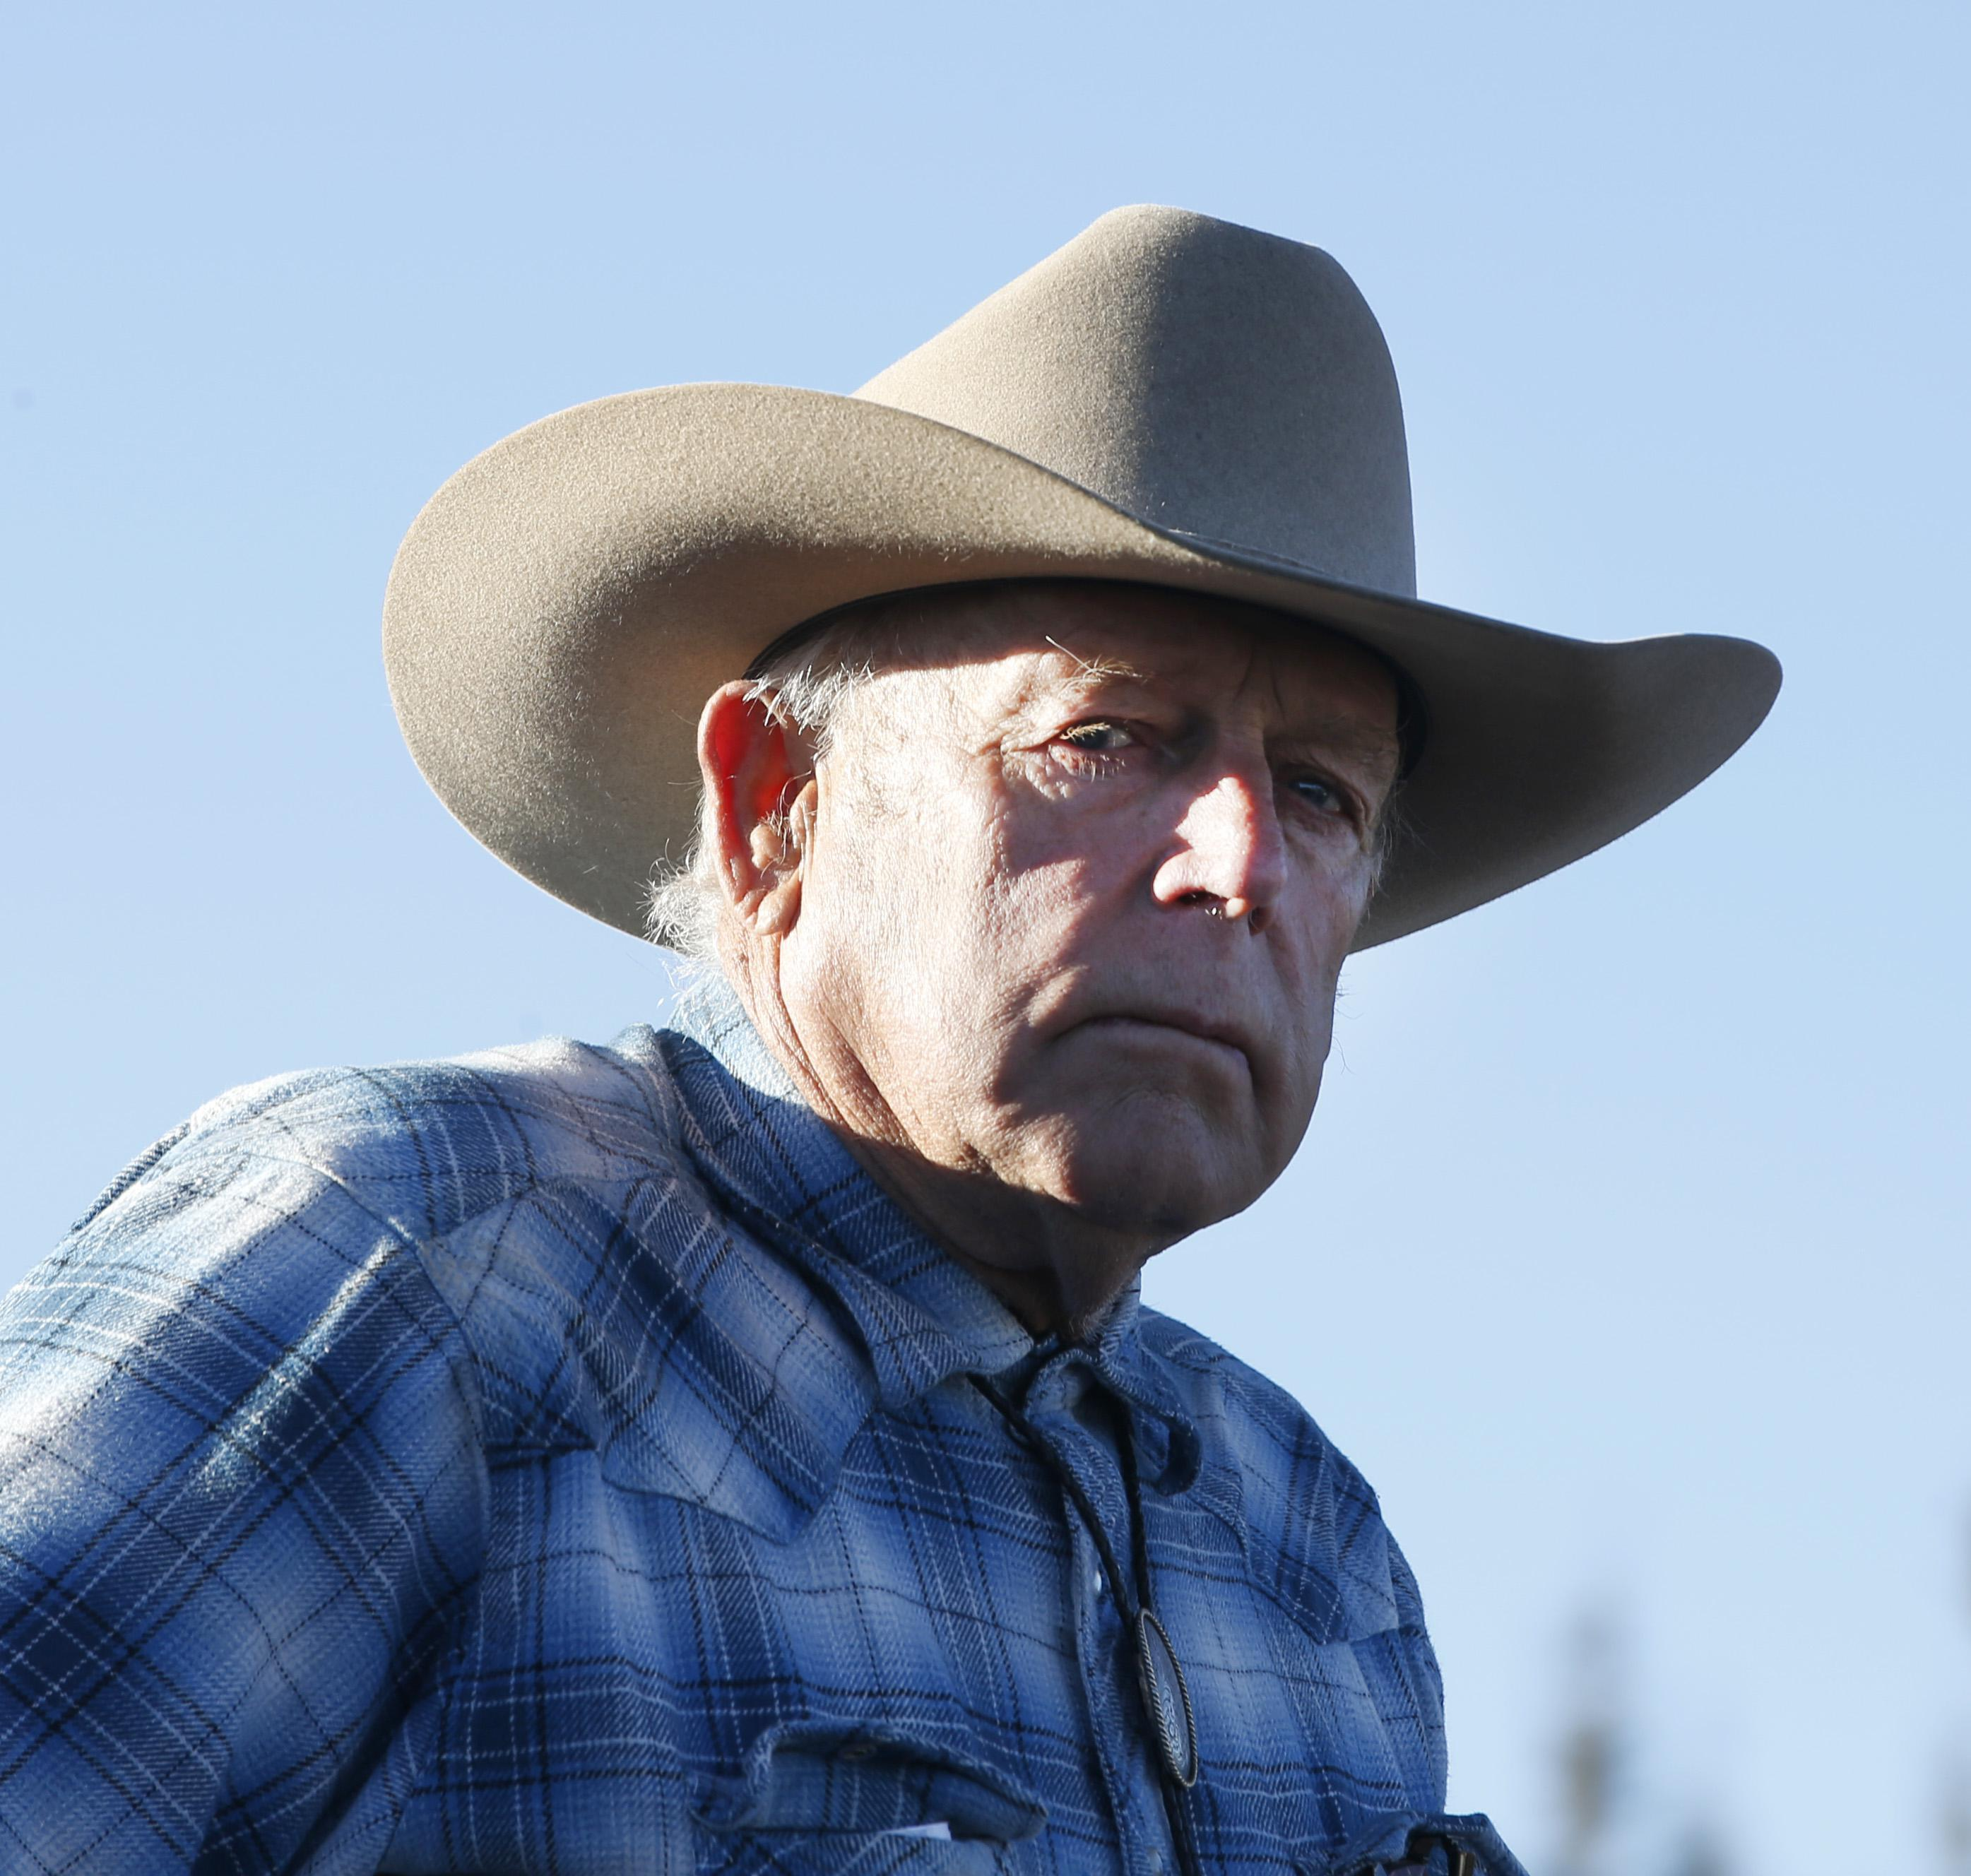 Cliven Bundy, who walked free on Monday after a federal judge dismissed charges against him in light of prosecutorial misconduct.